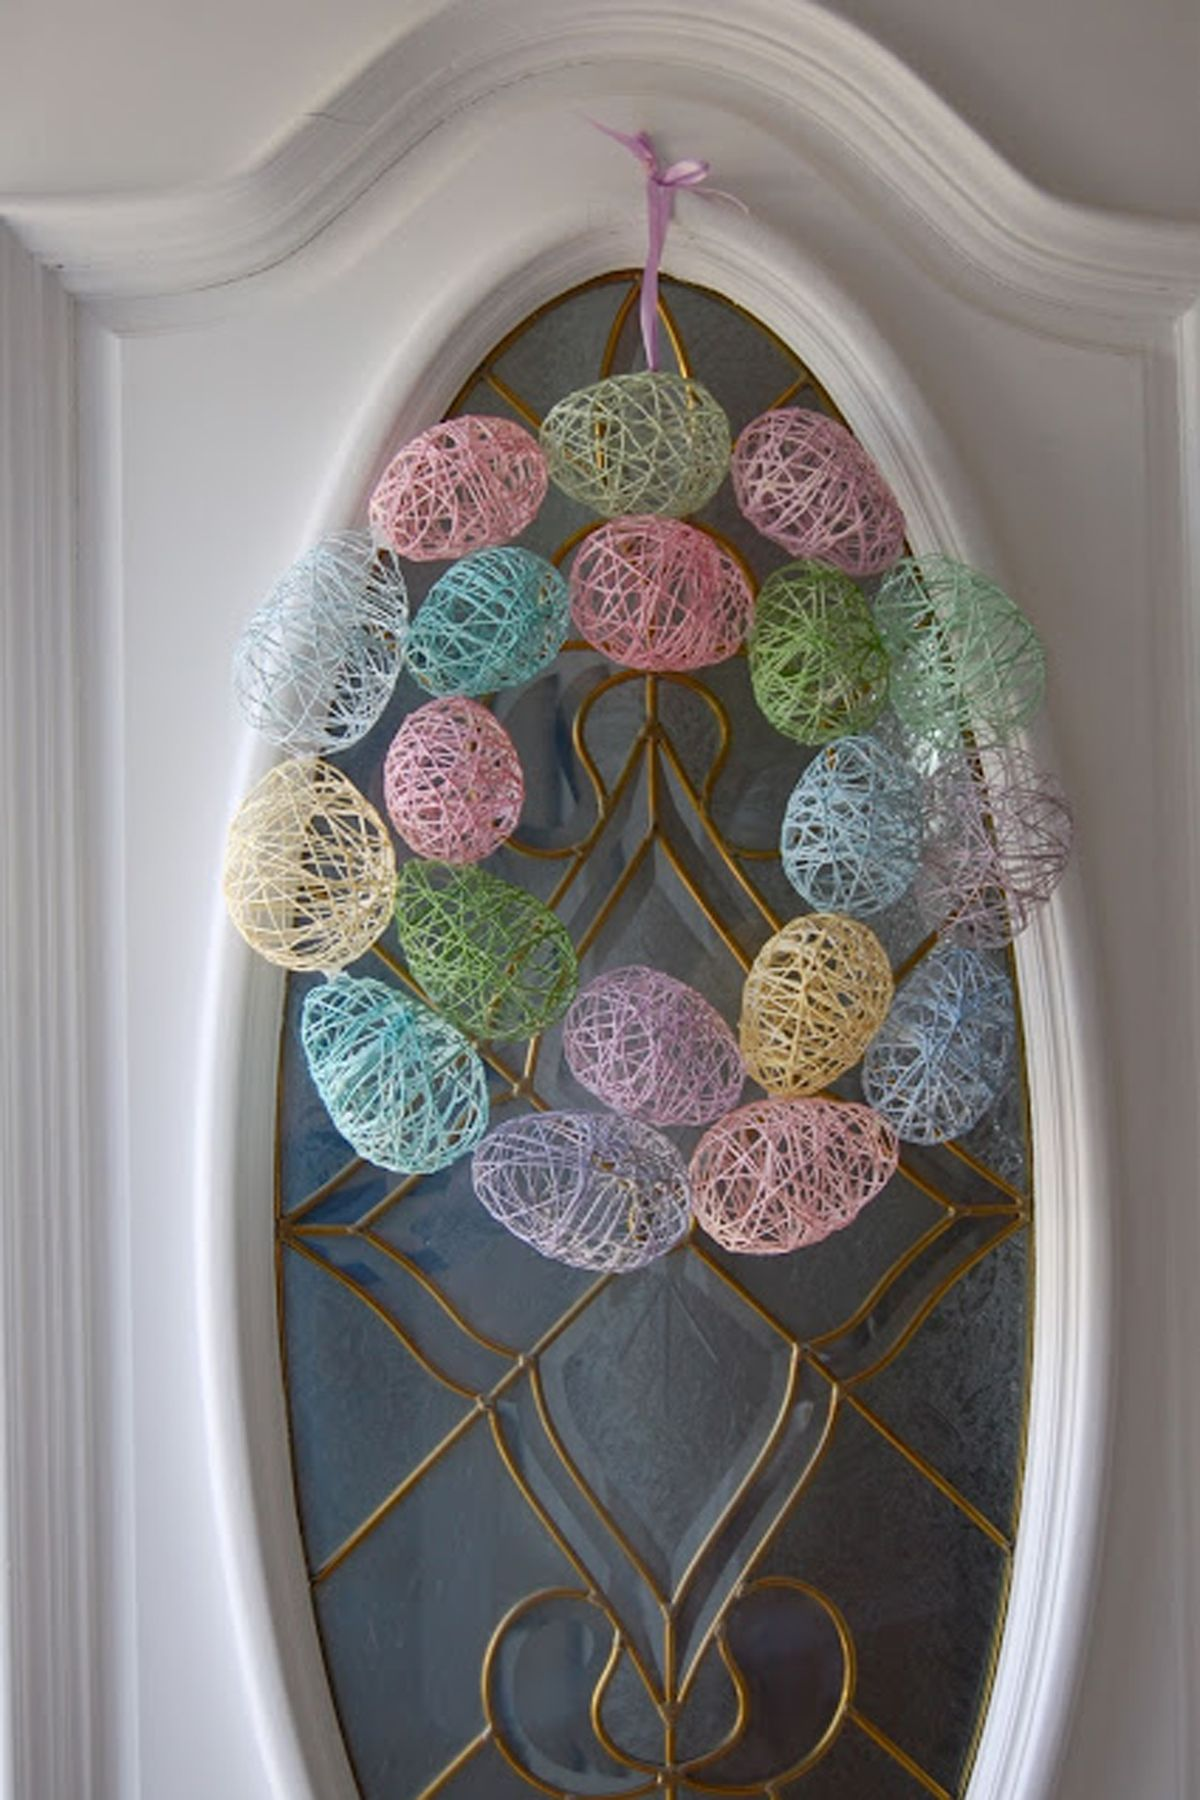 14 Beautiful DIY Easter Wreaths You Can Make in An Afternoon 14 Beautiful DIY Easter Wreaths You Can Make in An Afternoon new picture